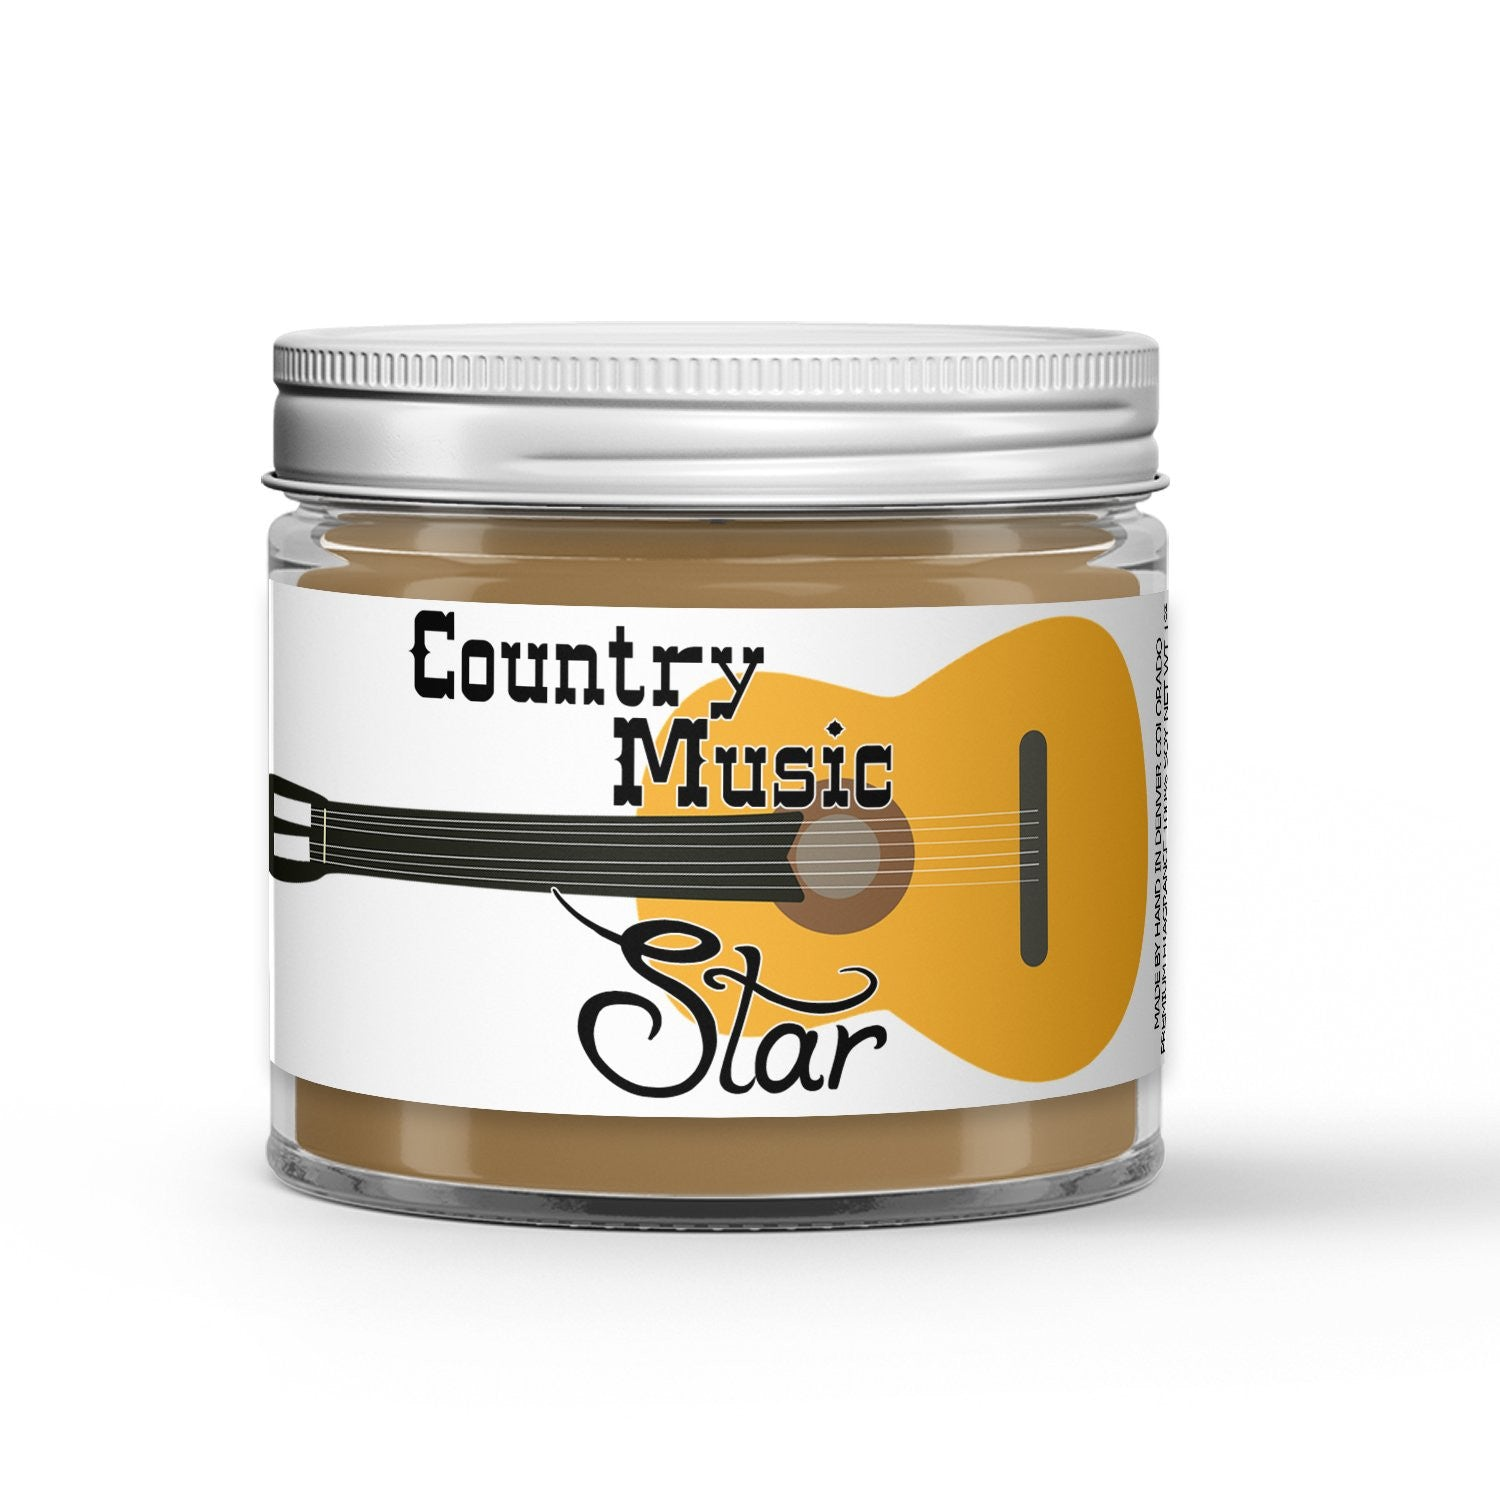 Country Music Star Candle - Bergamot - Sun Baked Grass - White Tea - 1oz Adorable Size Candle® - Dio Candle Company